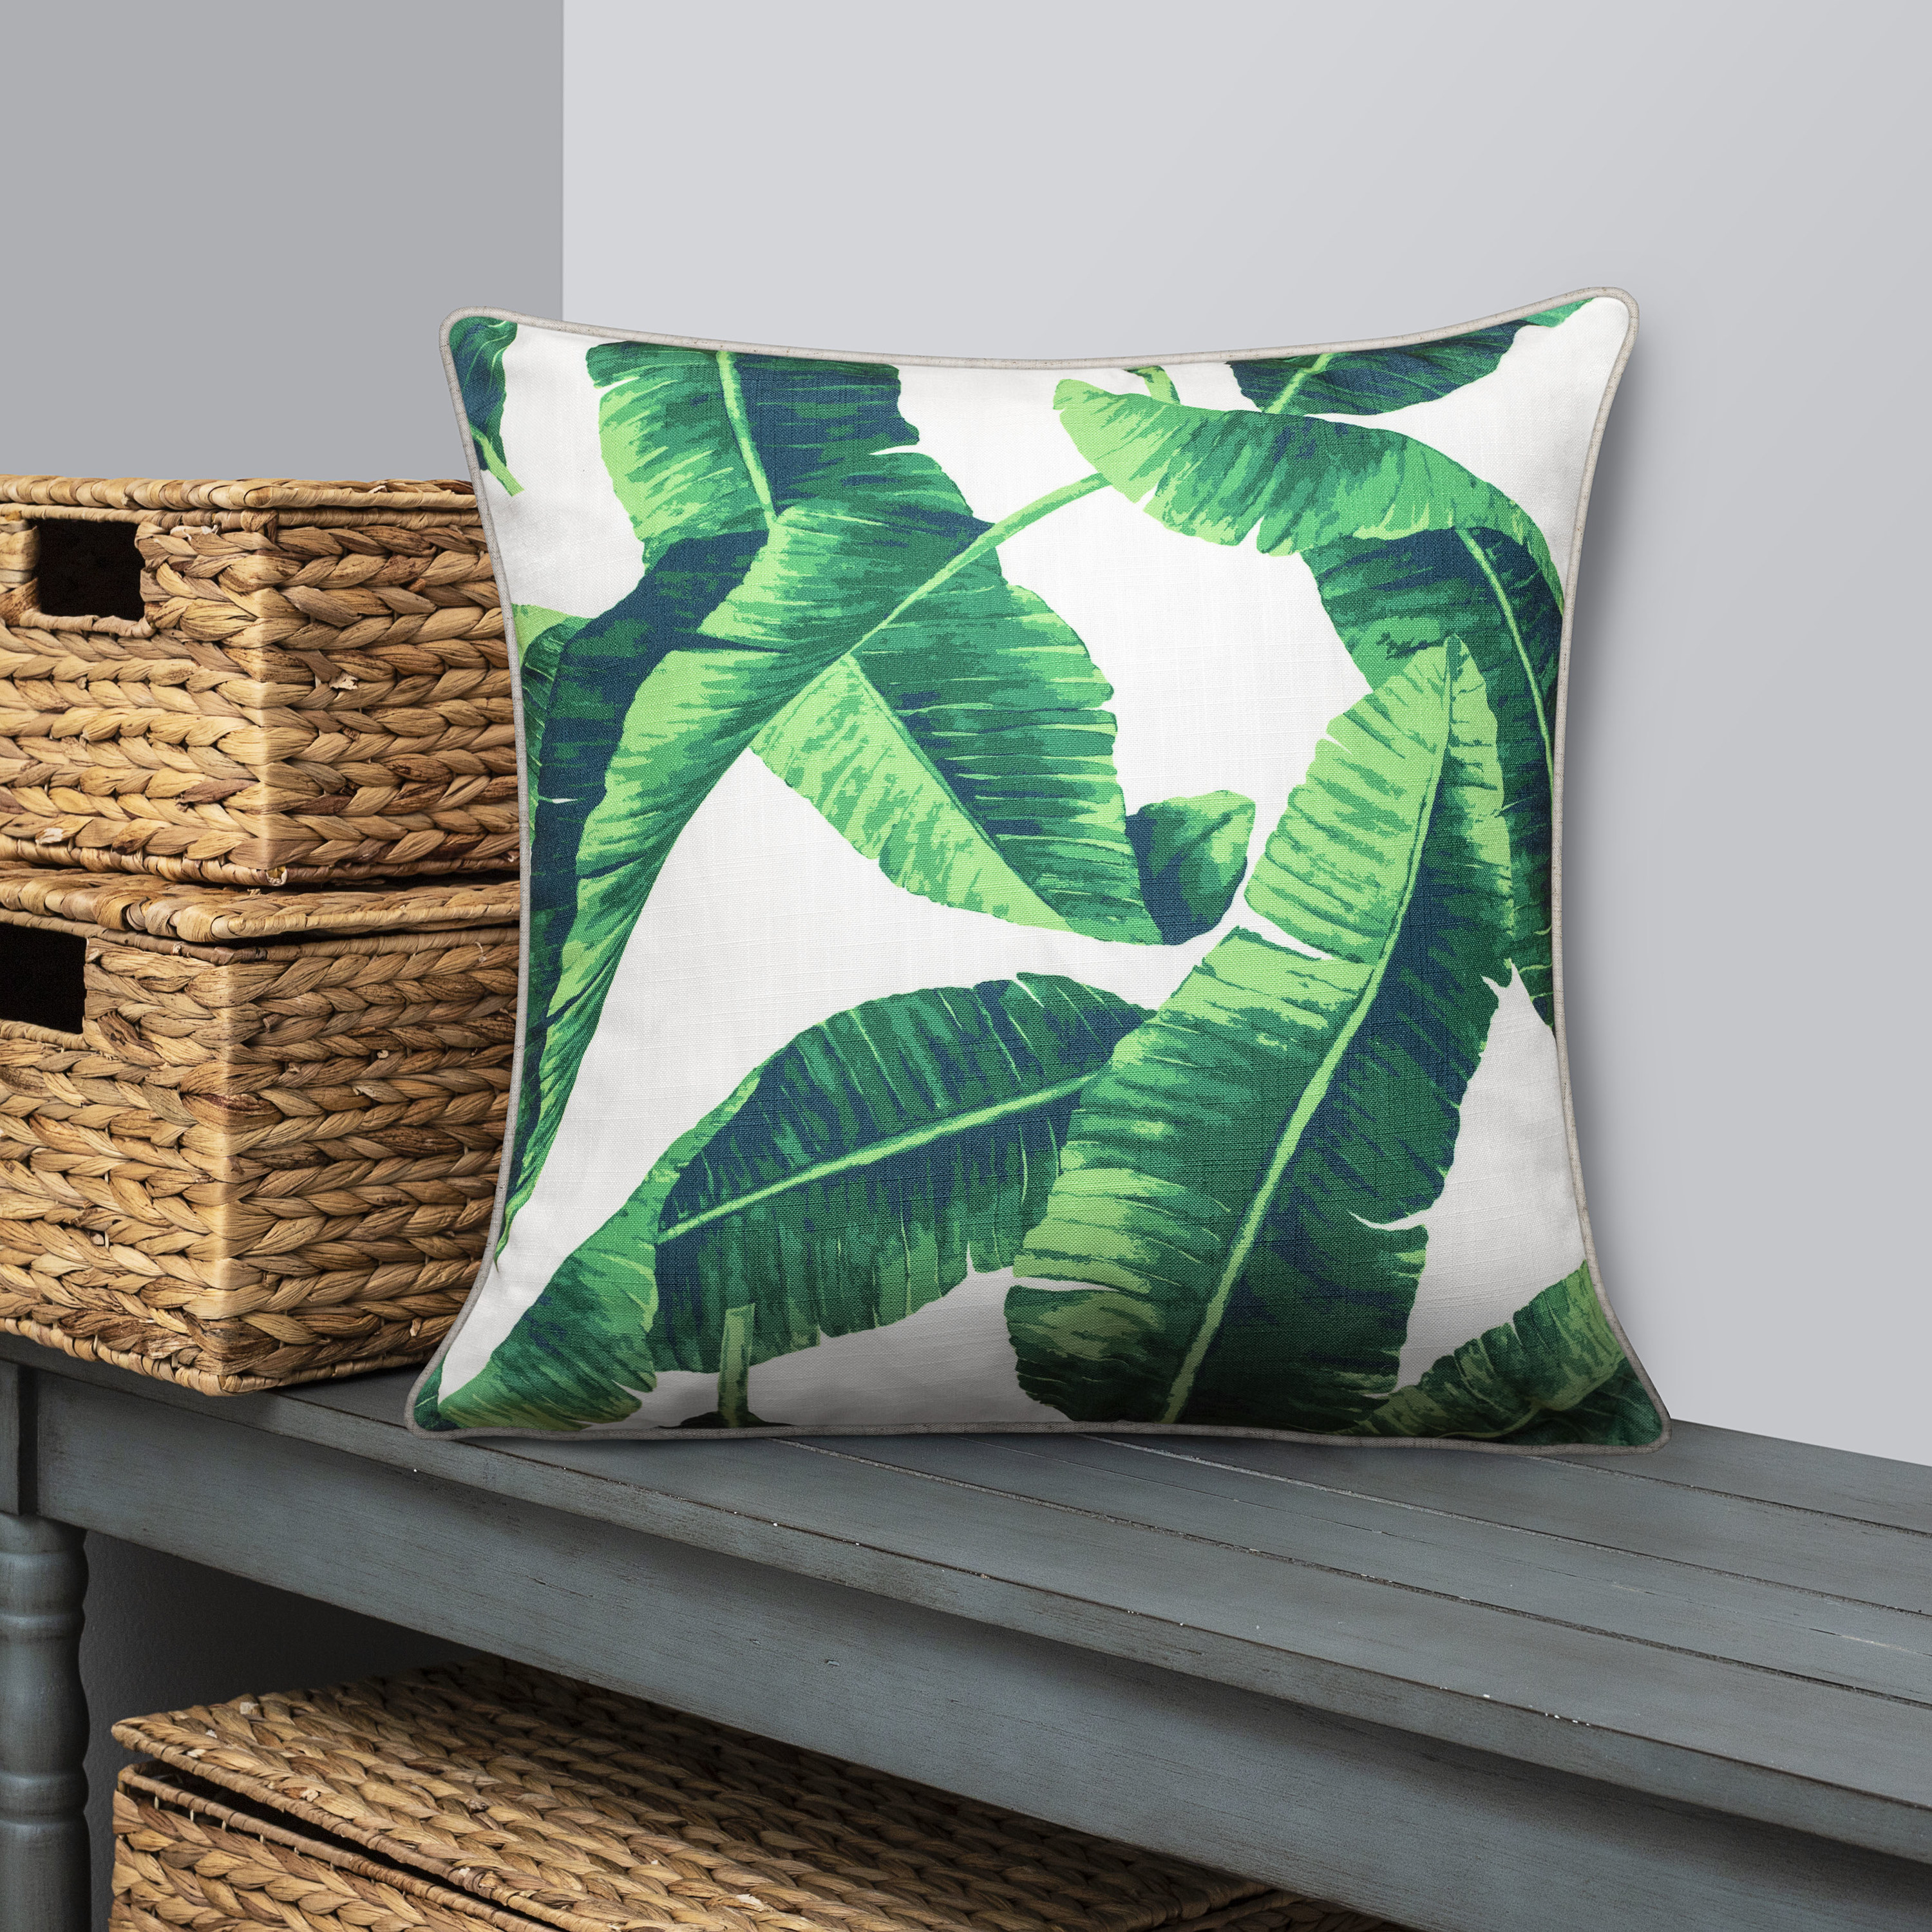 decorative throw pillow with botanical palm leaves on it